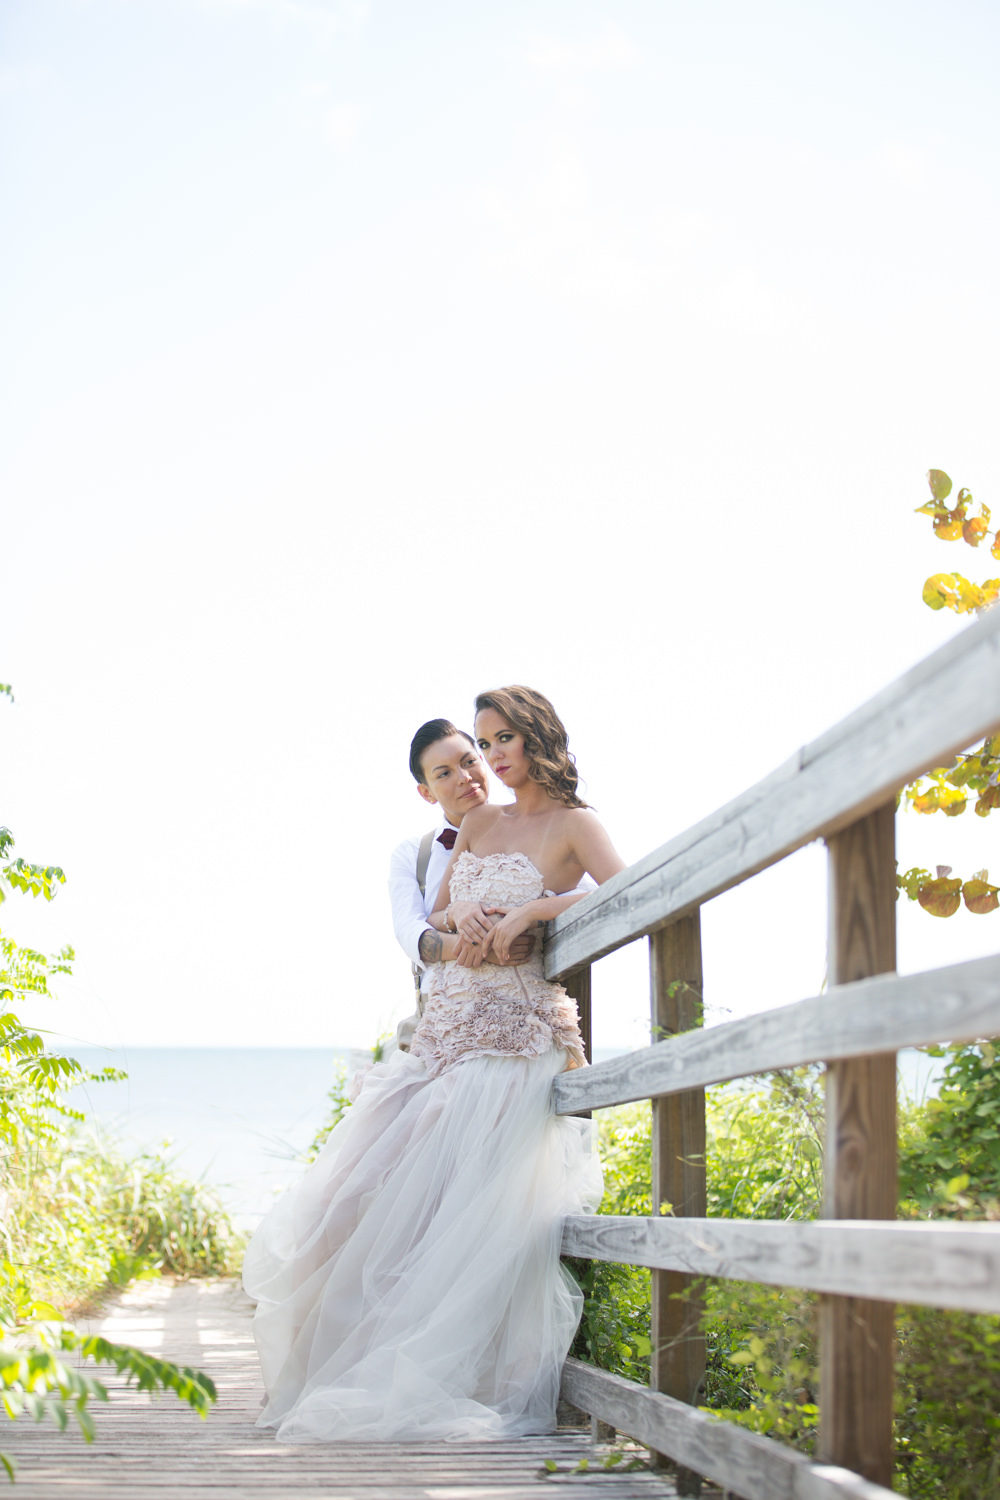 Key-West-Wedding-Styled-Shoot-Fort-Zachary-Taylor-Beach-09.jpg